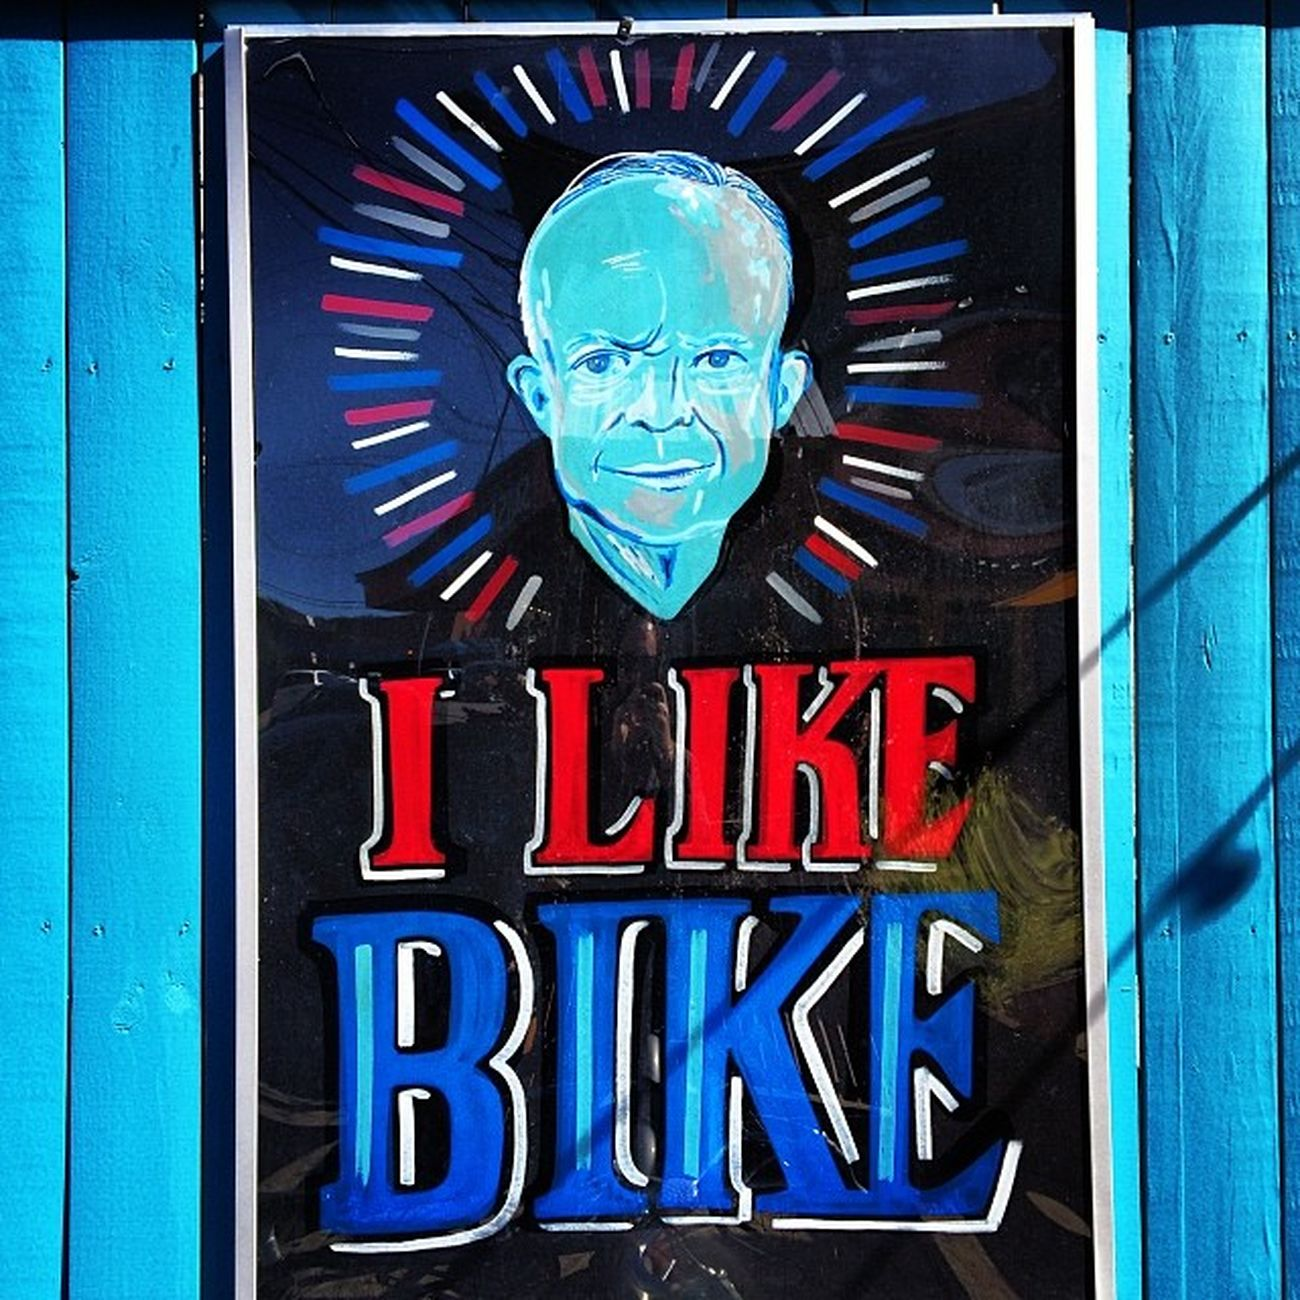 Vintage Bike Blue Bicycle Red America Classic USA White Colorful Patriotism Hipster Uptown Patriotic NOLA POTUS President 50s 1950s Redwhiteandblue Neworleans Ike Neoclassic Rr_givemeasign Jj_louisiana_041 Dwighteisenhour Ilikeike Eisenhour